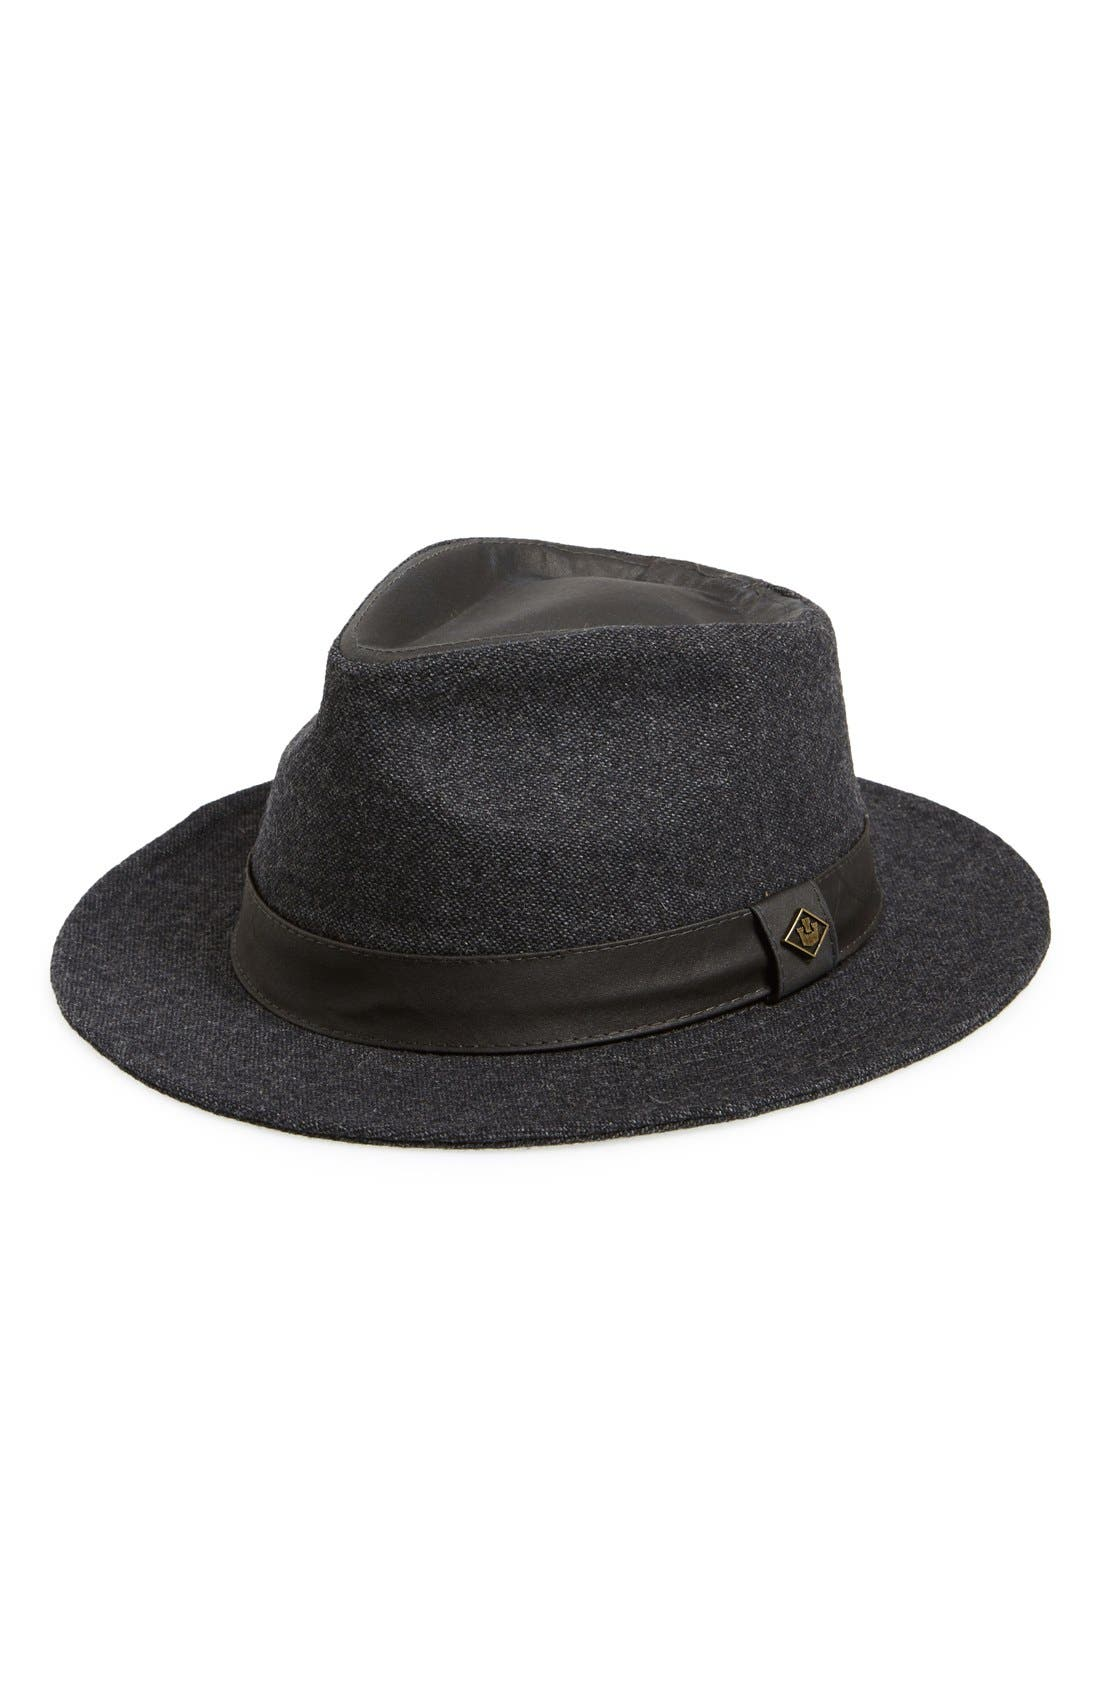 GOORIN BROTHERS Goorin Brothers 'Big Tuna' Fedora, Main, color, 010